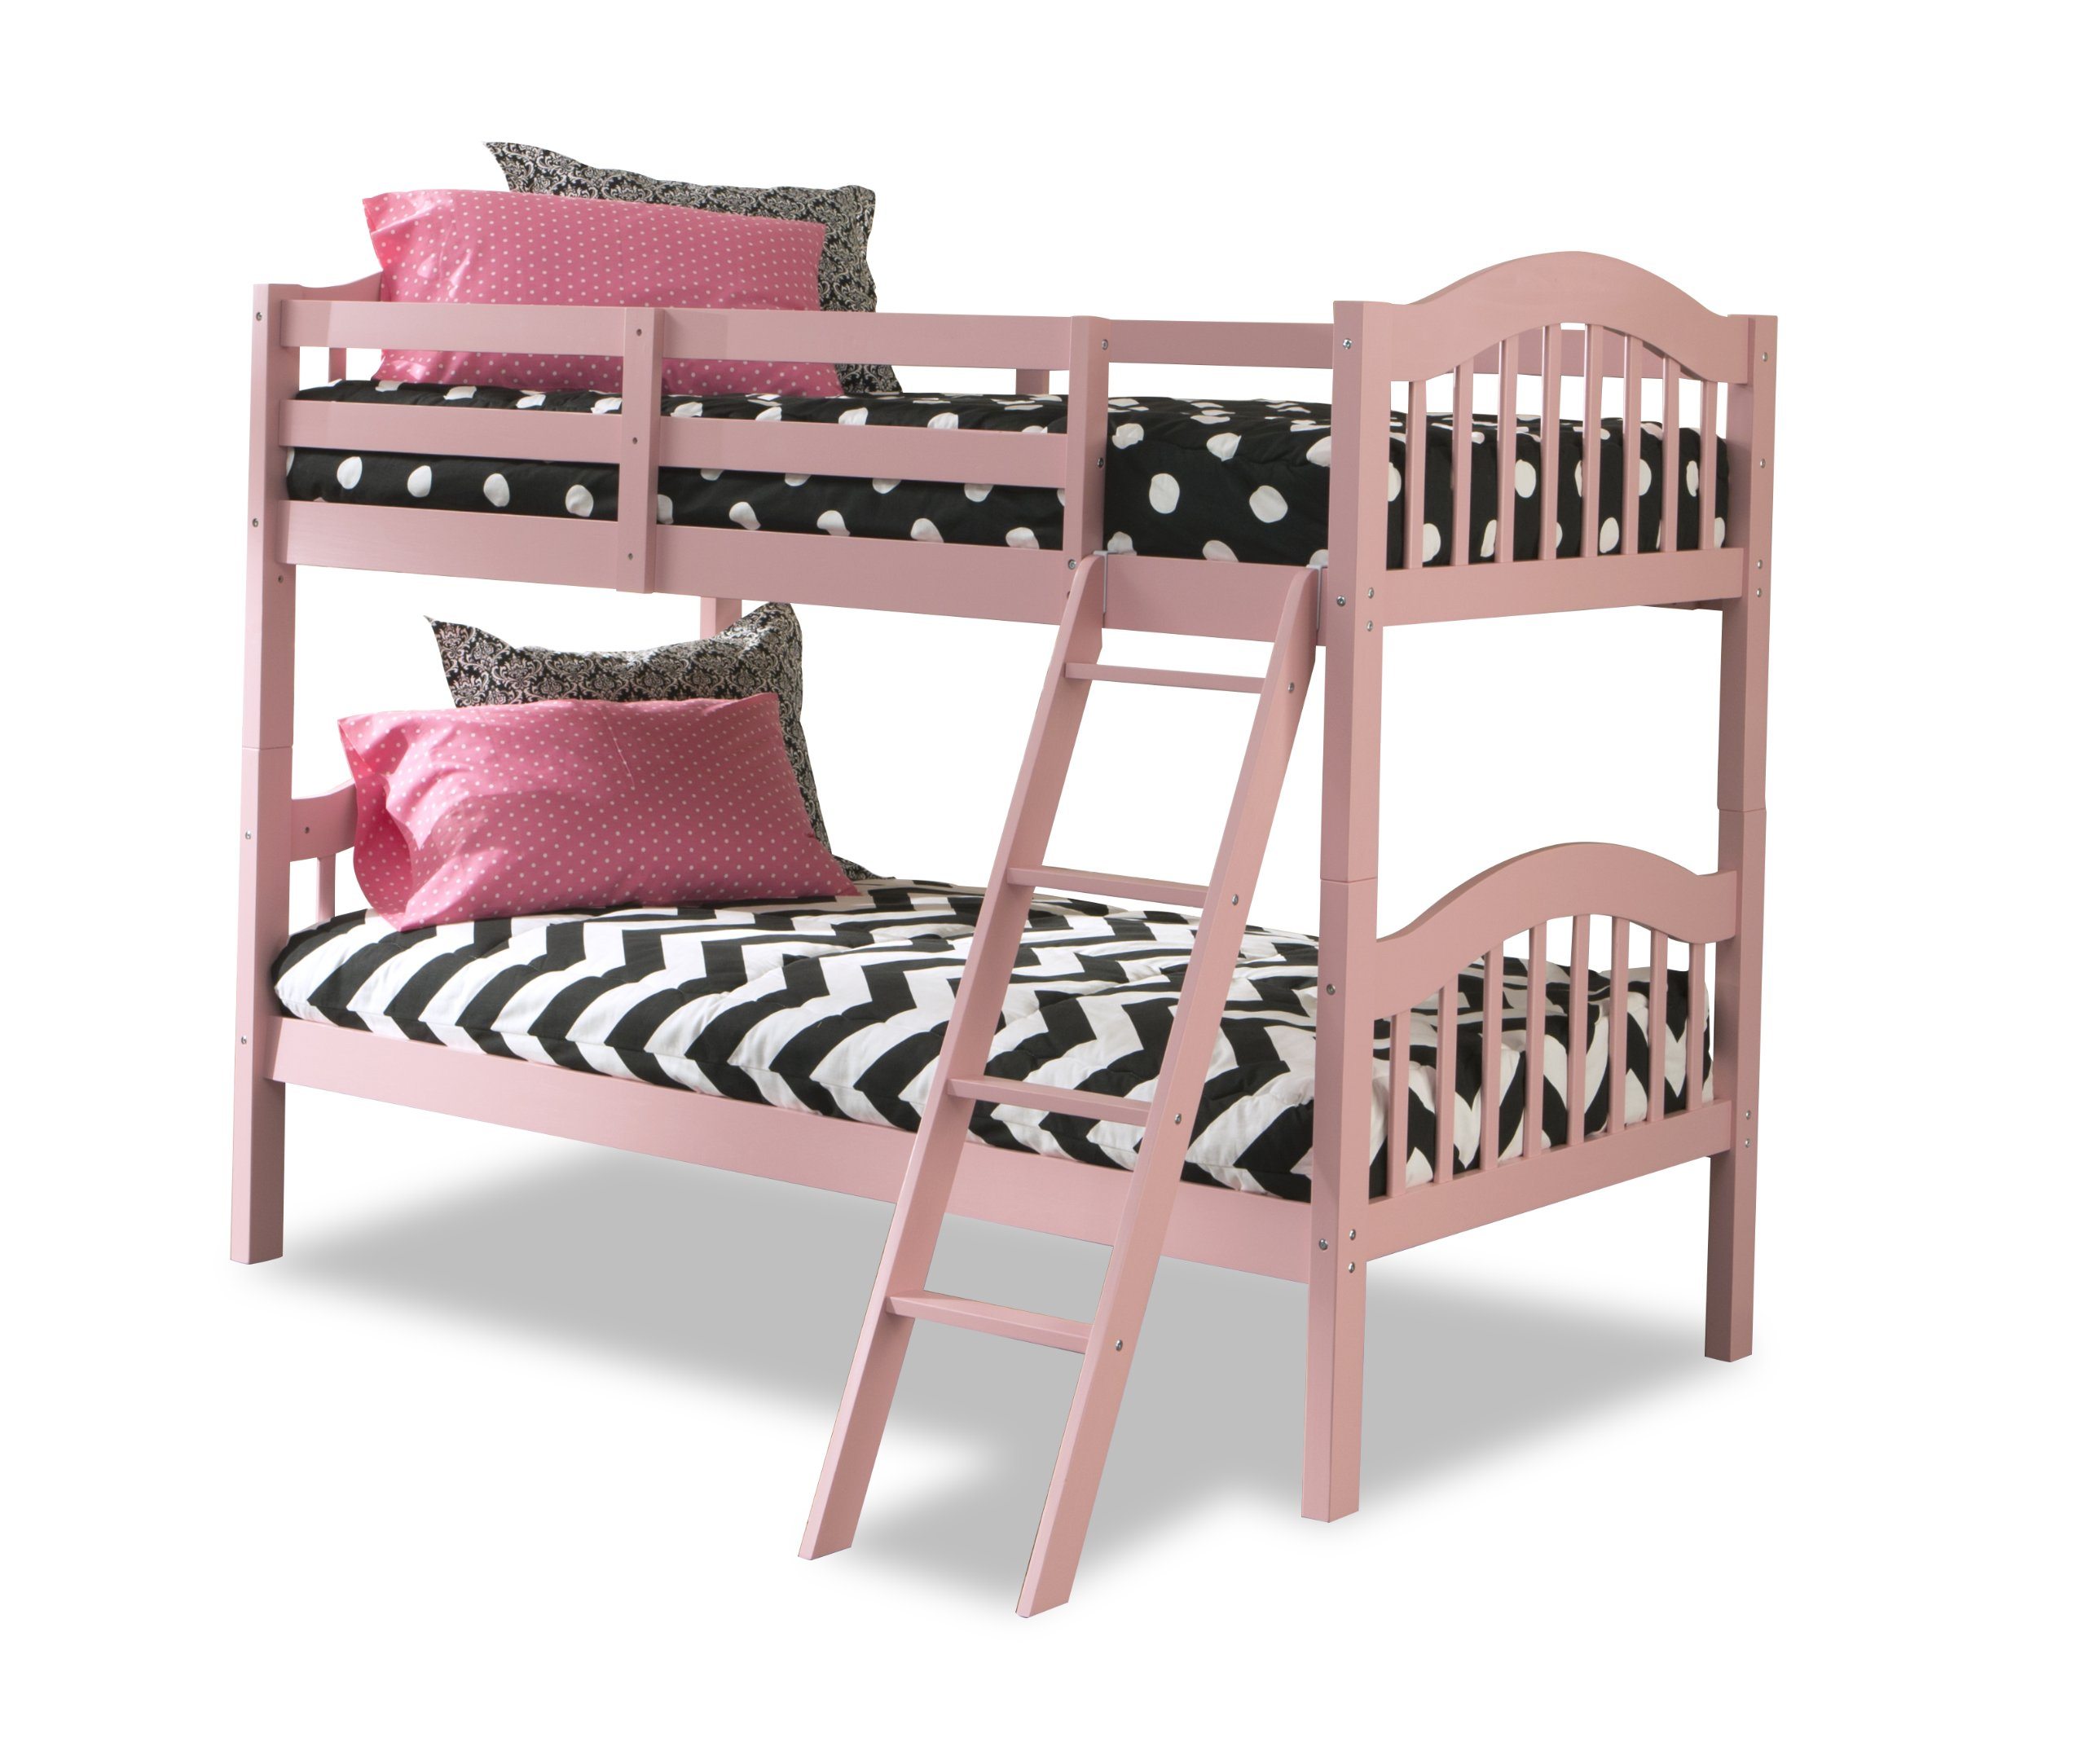 Storkcraft Long Horn Solid Hardwood Twin Bunk Bed Pink Twin Bunk Beds for Kids with